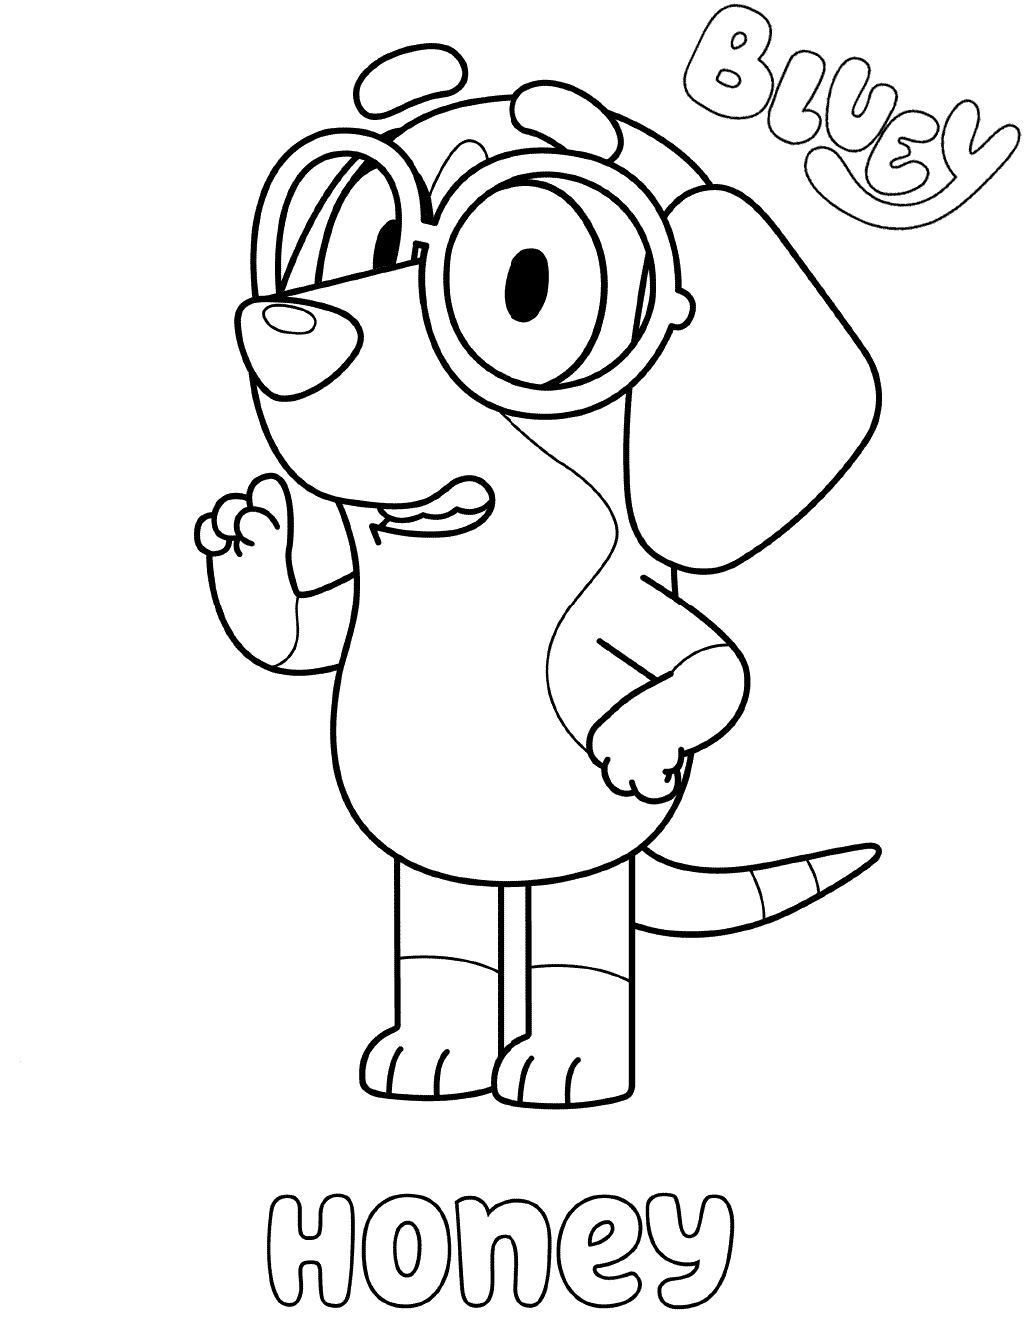 Honey Bluey Coloring Pages